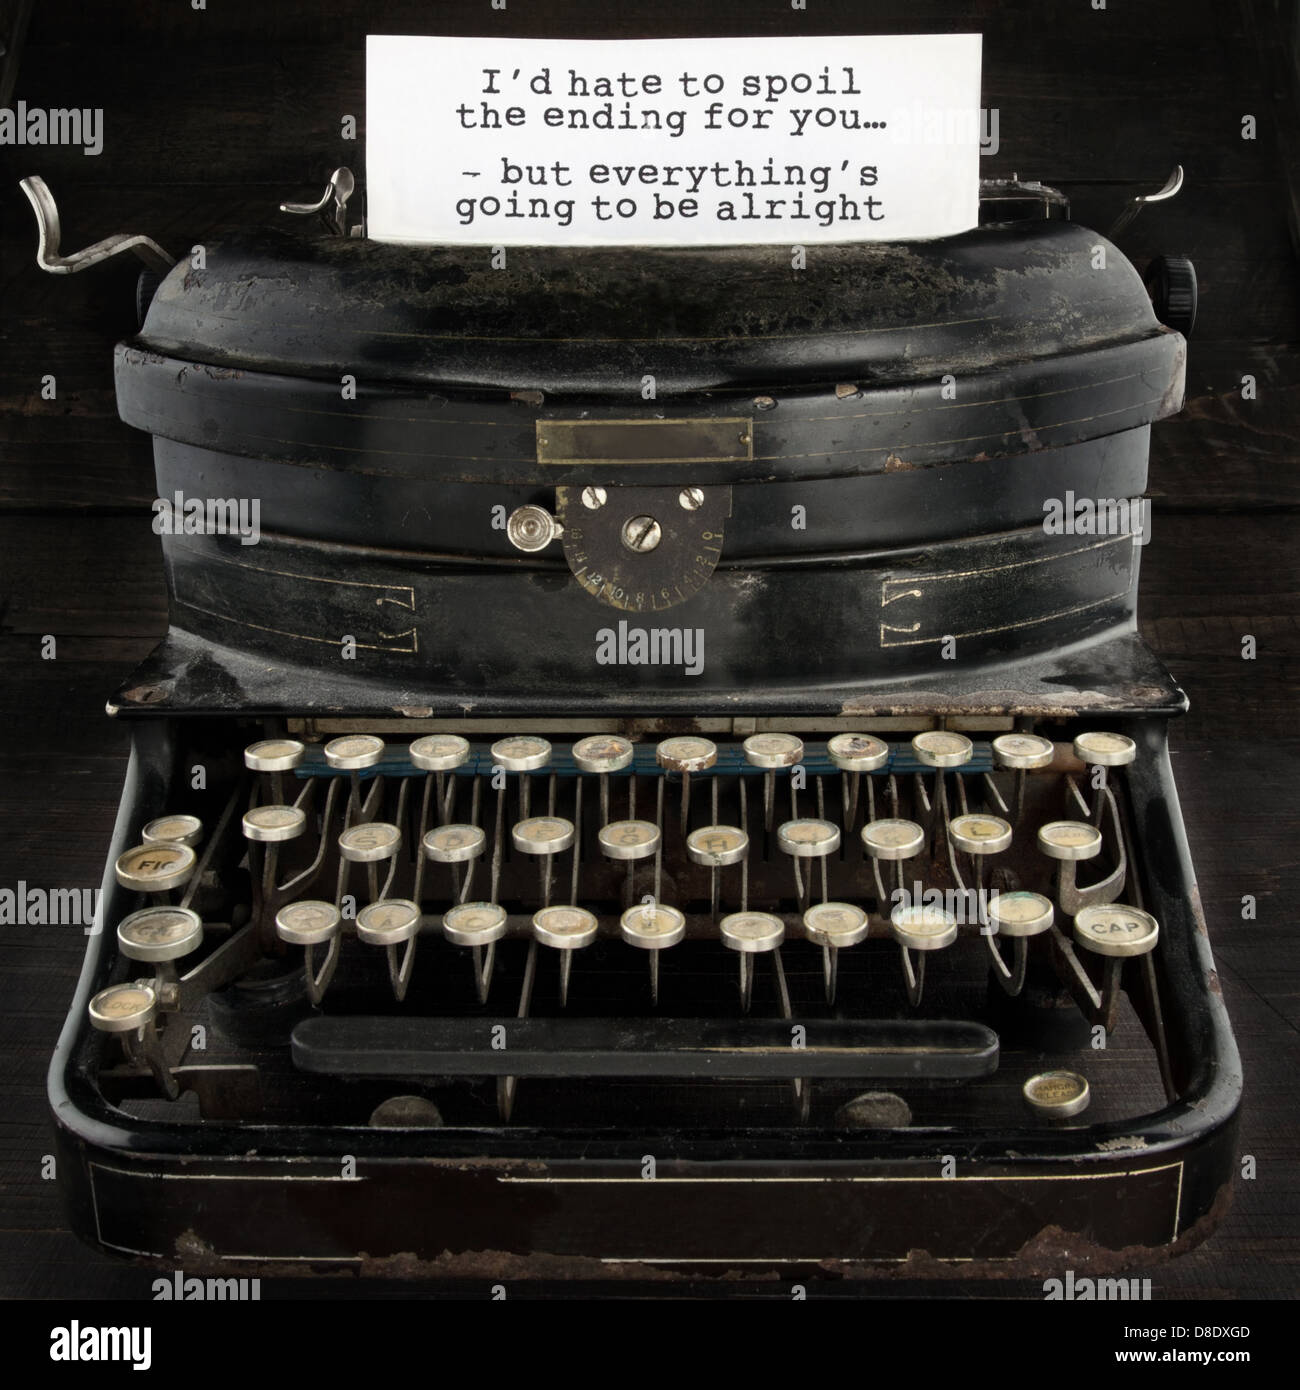 Old black antique vintage typewriter with inspirational quote - Stock Image